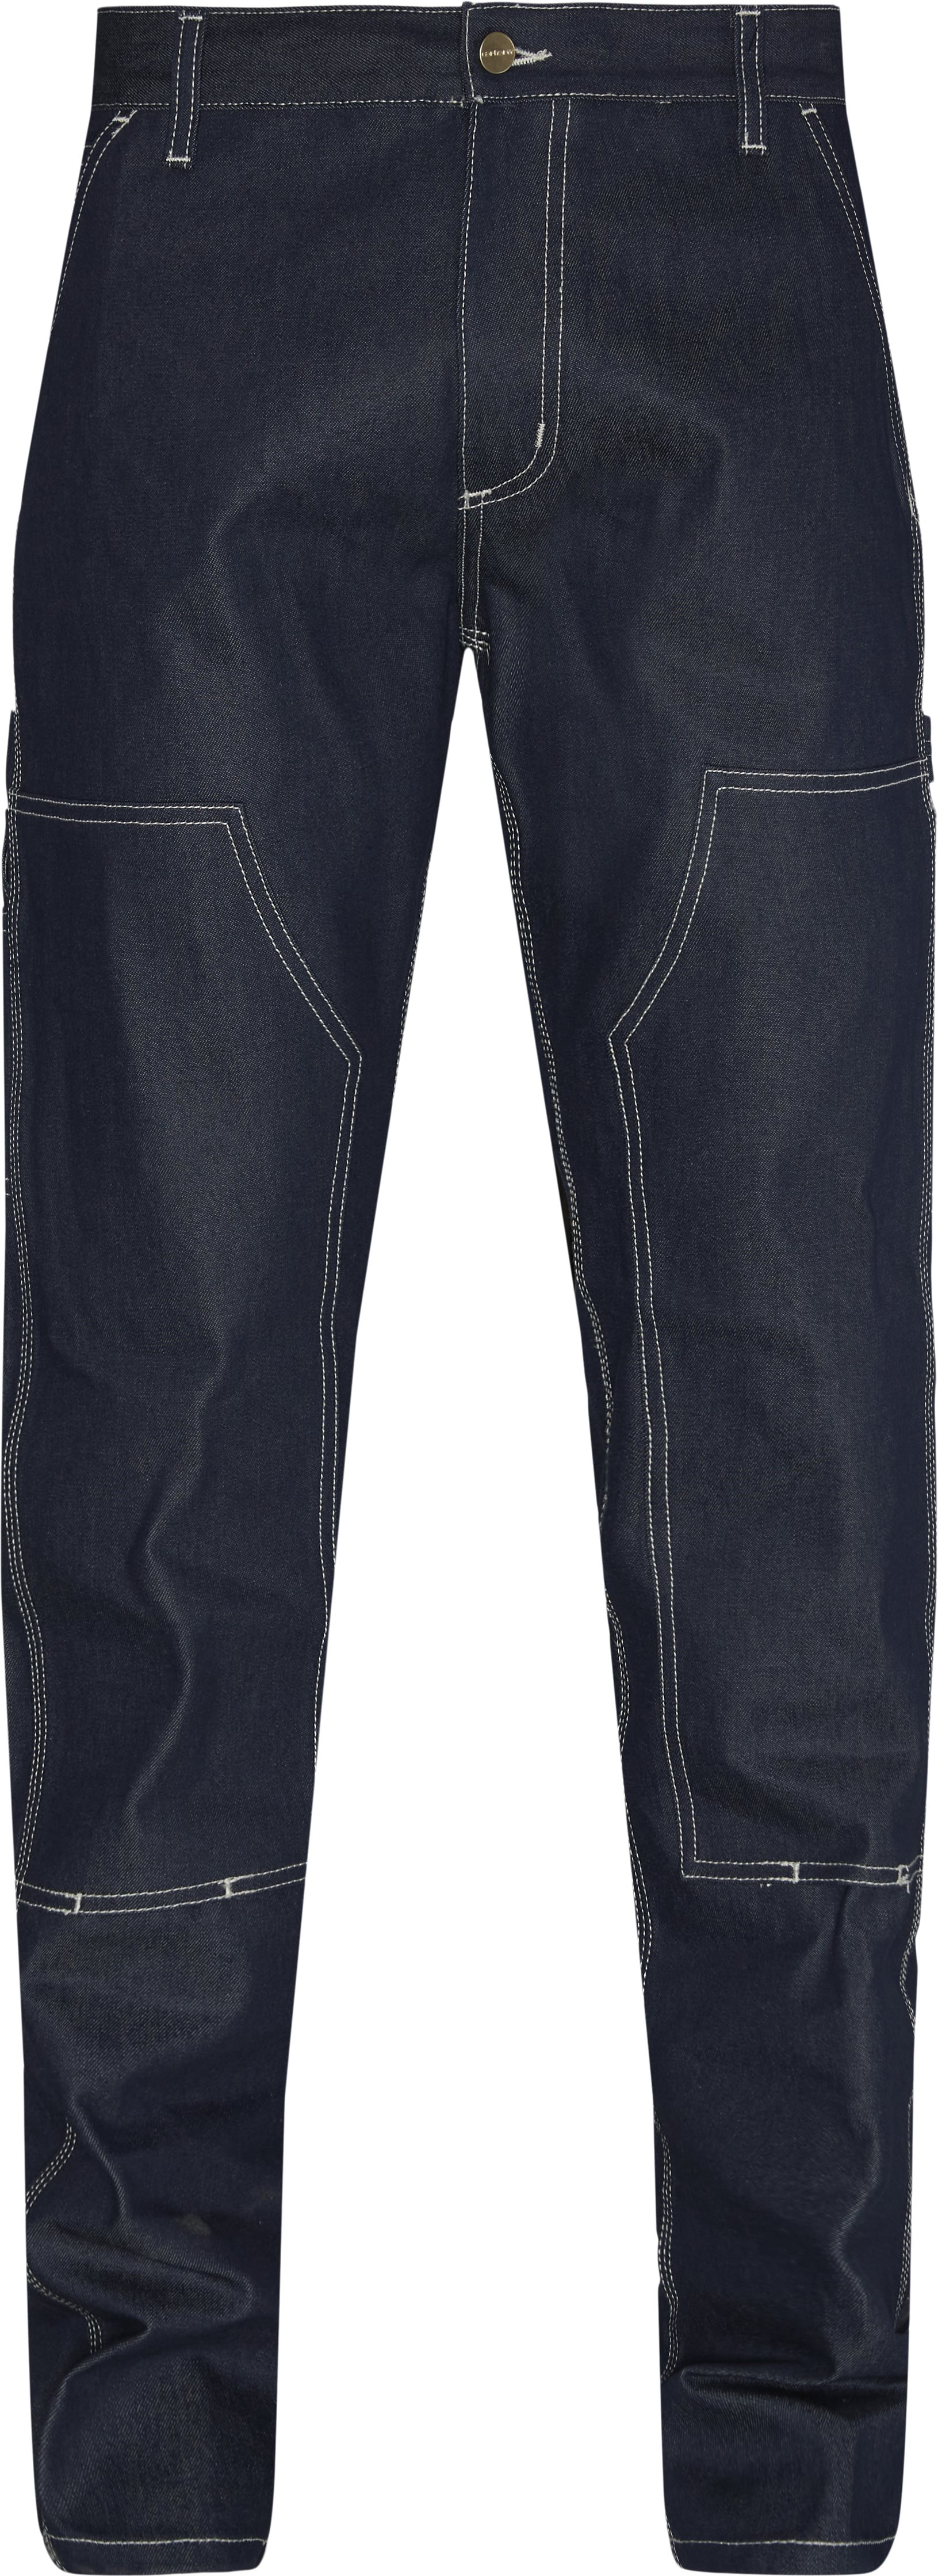 Ruck Double Knee Pant I022949 - Jeans - Tapered fit - Blå